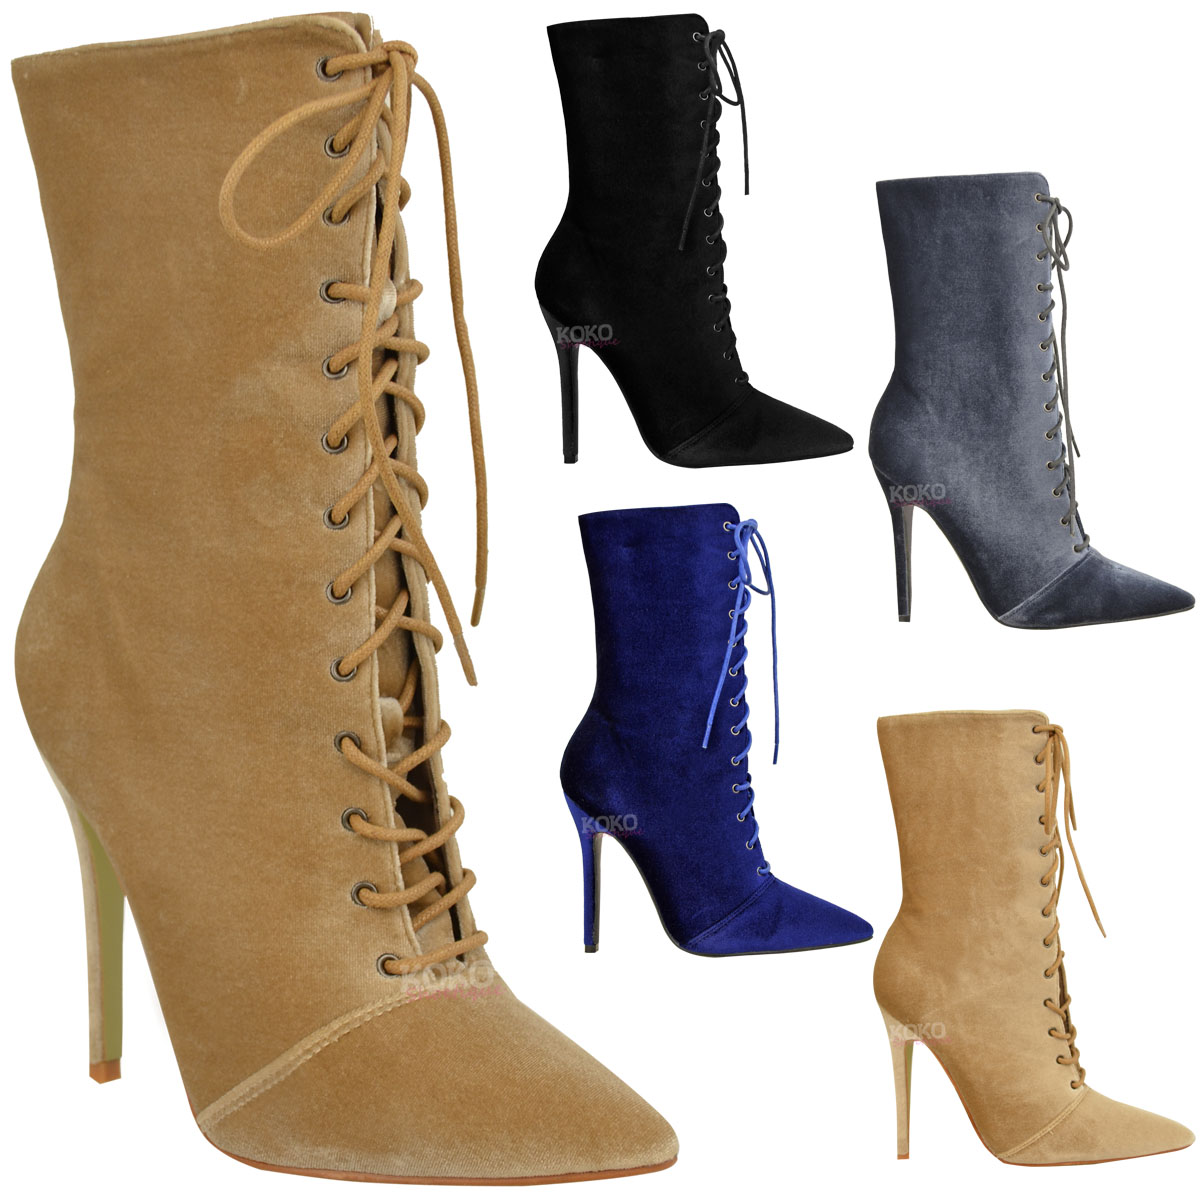 Lastest Fashion Women Ankle Boots High Heels Lace Up Snow Boots Platform Pumps